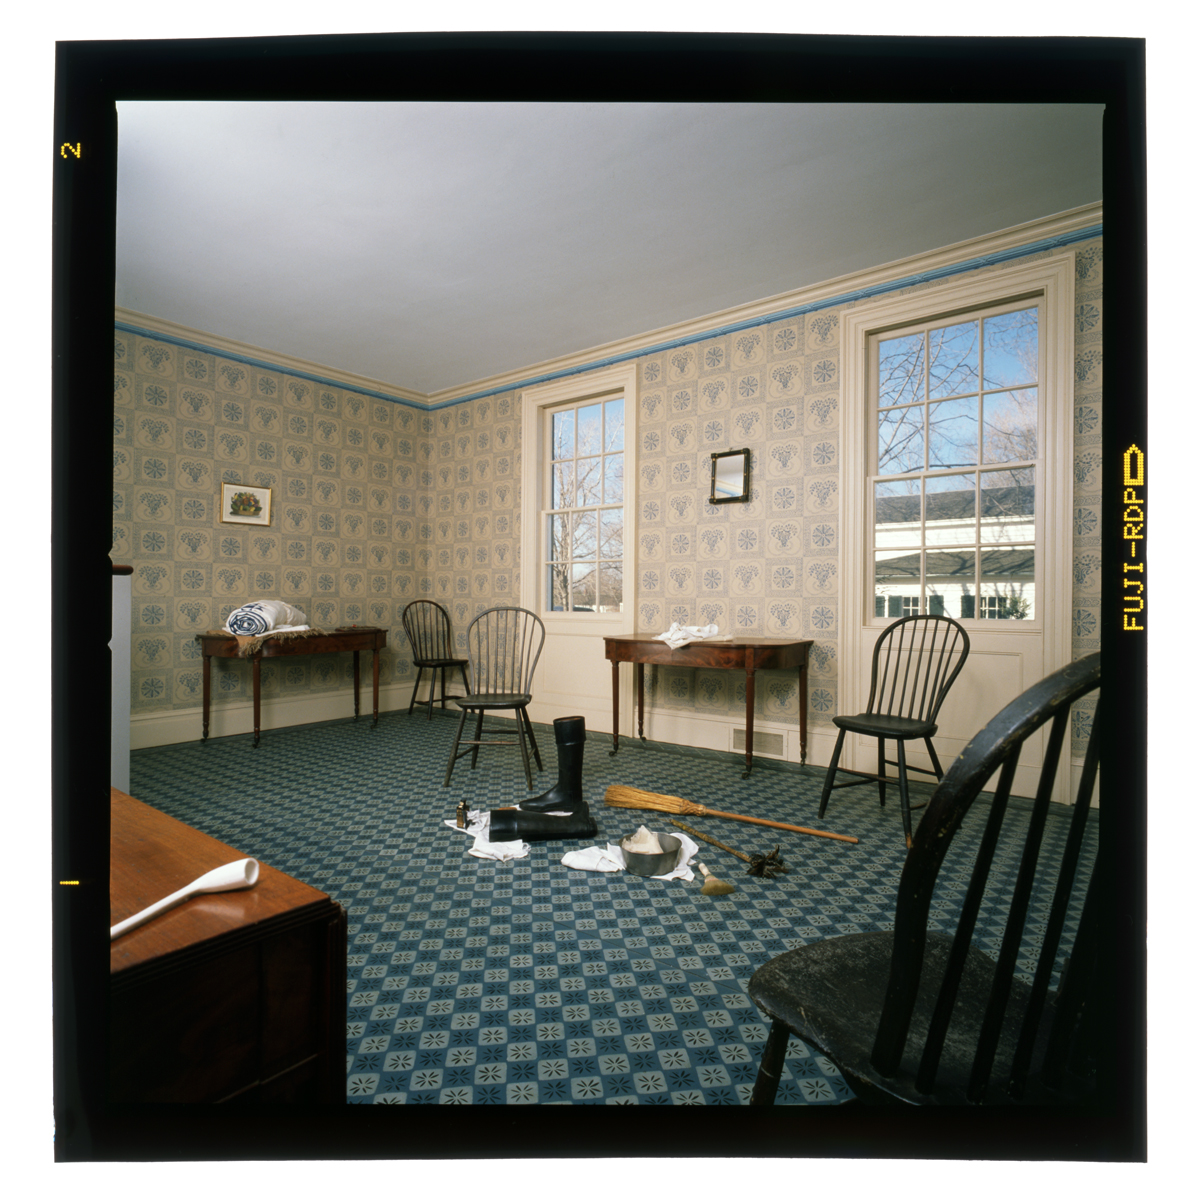 Mostly empty room with patterned floor and wallpaper, containing a few chairs and side tables